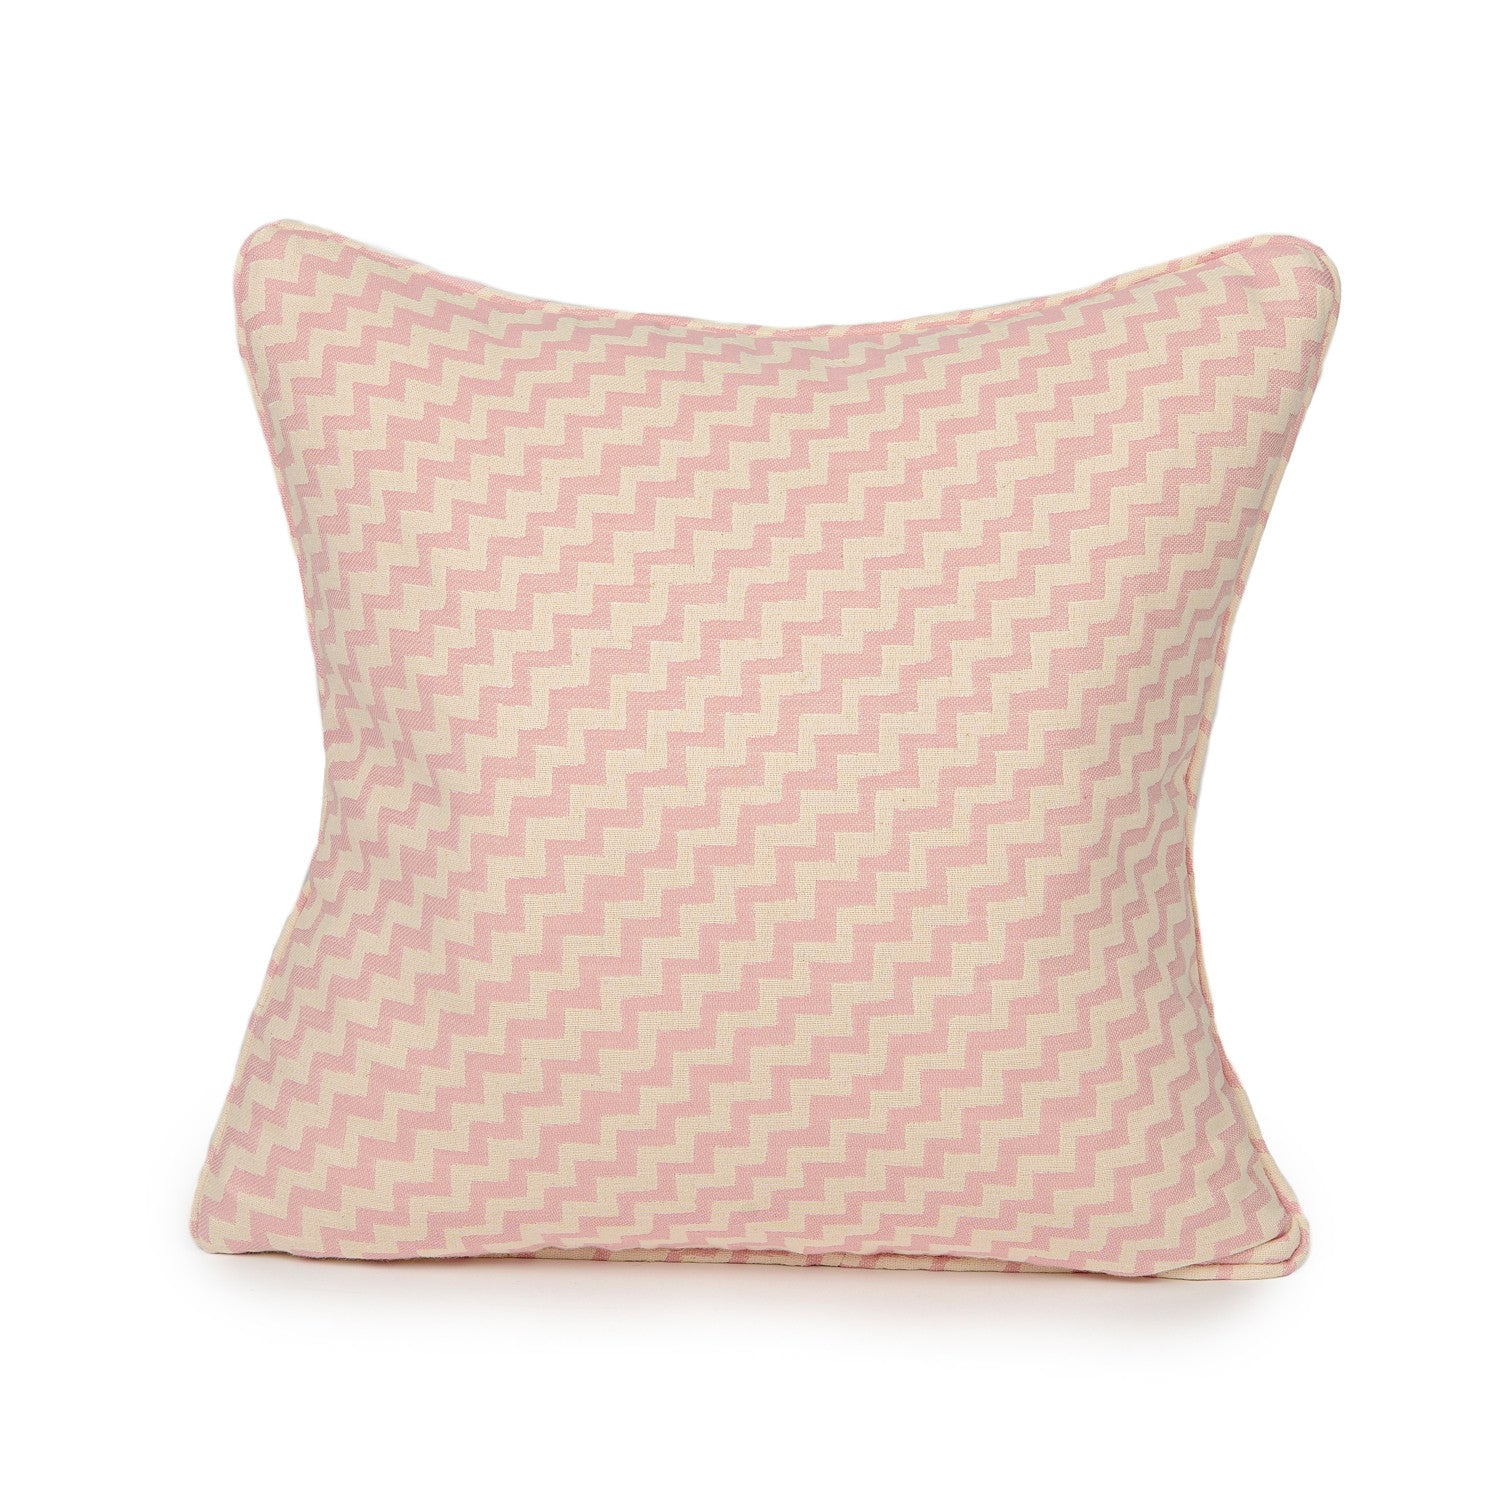 Climbing Chevy Cushion Rose and Cream